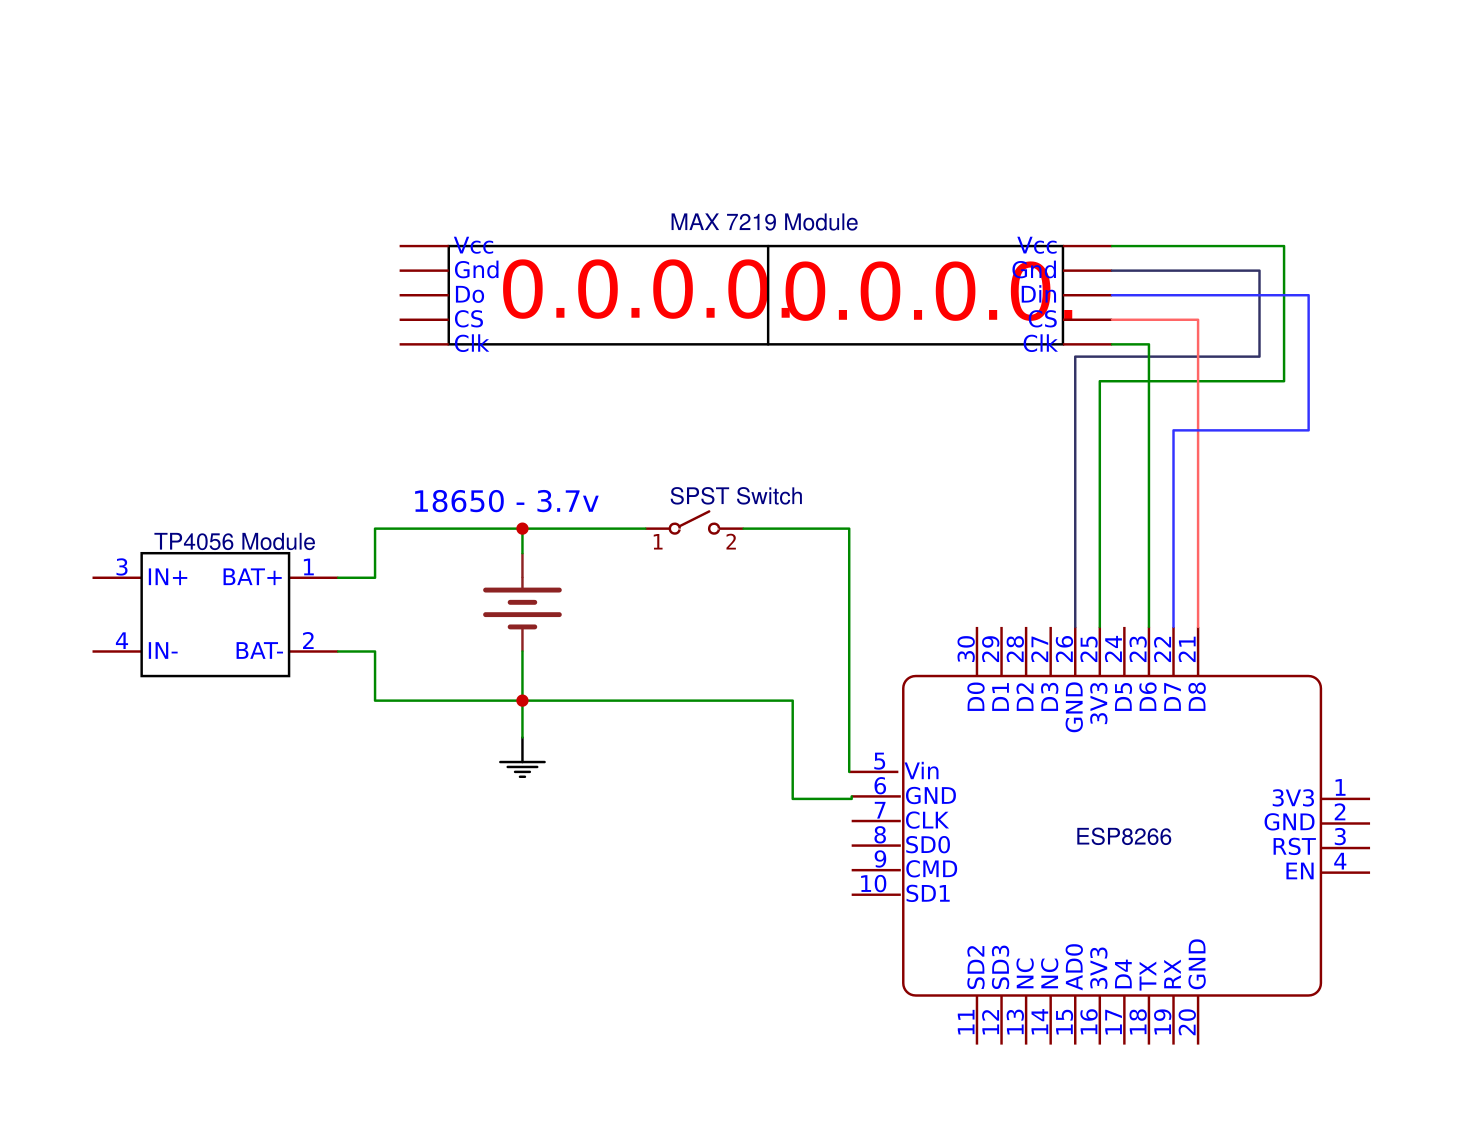 Picture of Schematic, Code and Setup